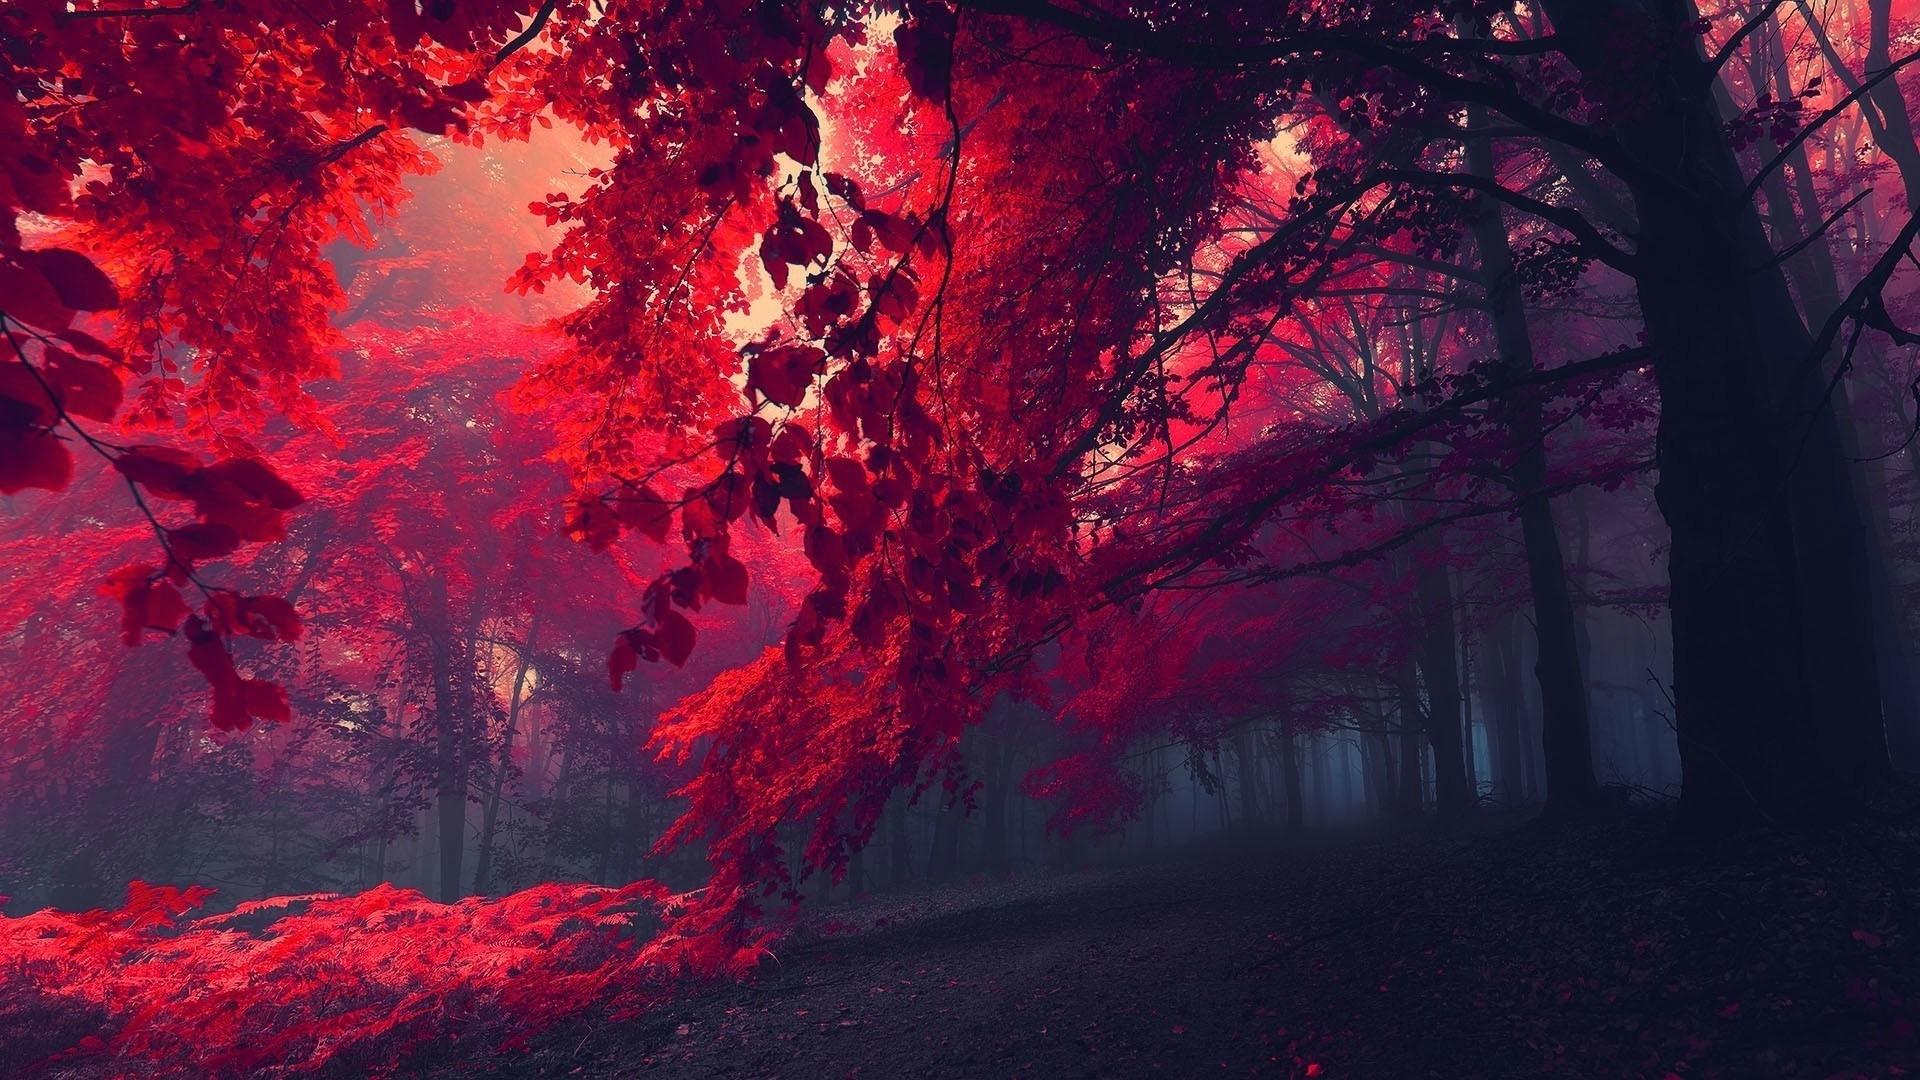 red nature wallpaper (65+ images)